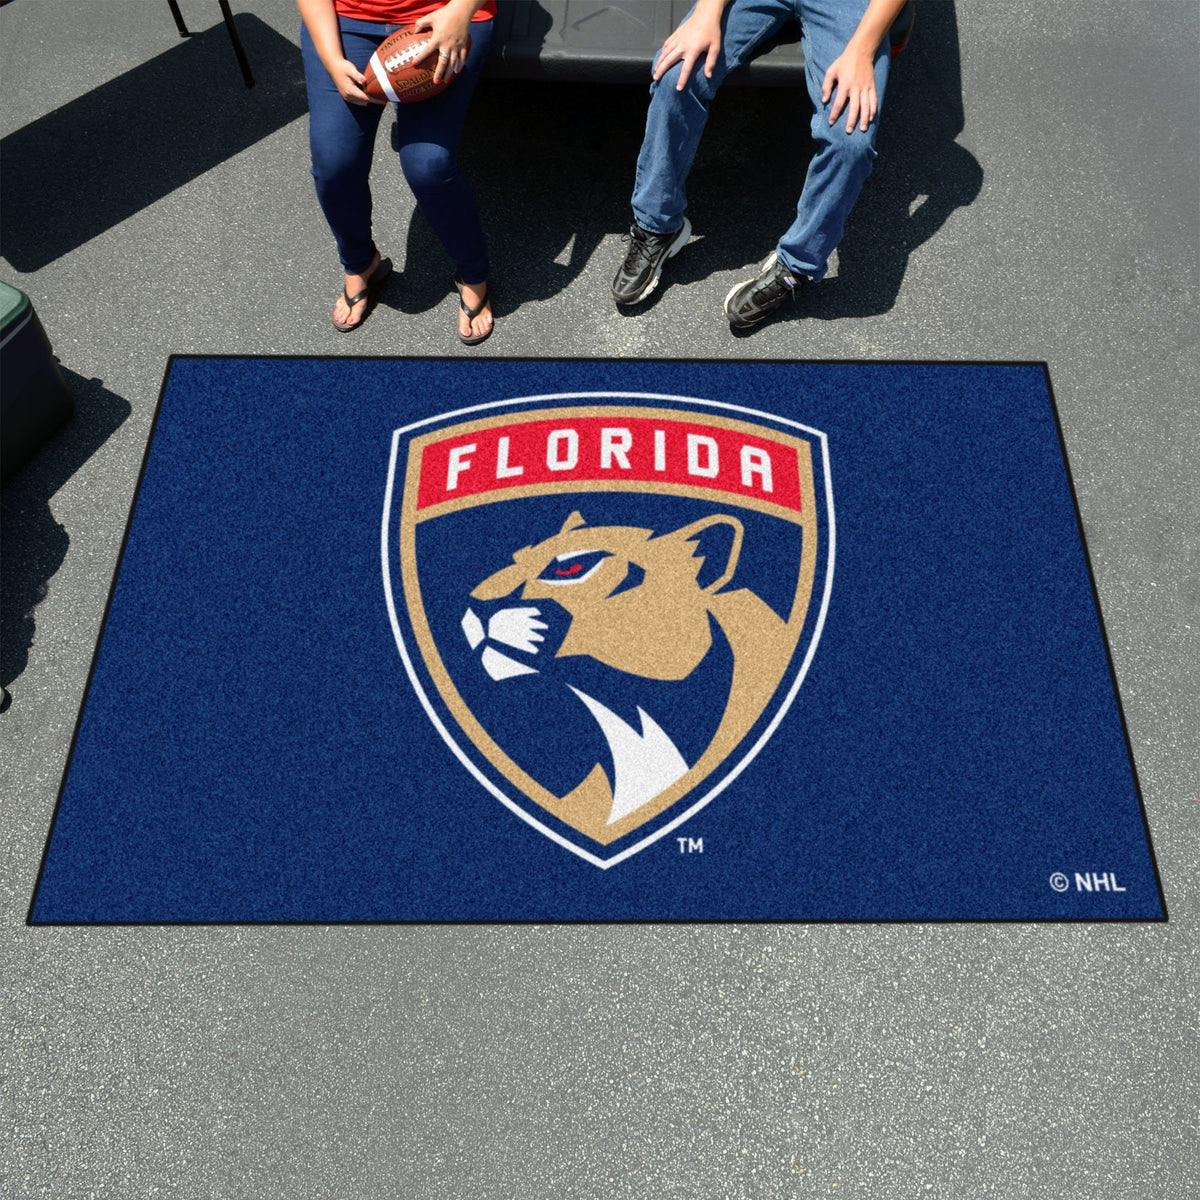 NHL - Ulti-Mat NHL Mats, Rectangular Mats, Ulti-Mat, NHL, Home Fan Mats Florida Panthers